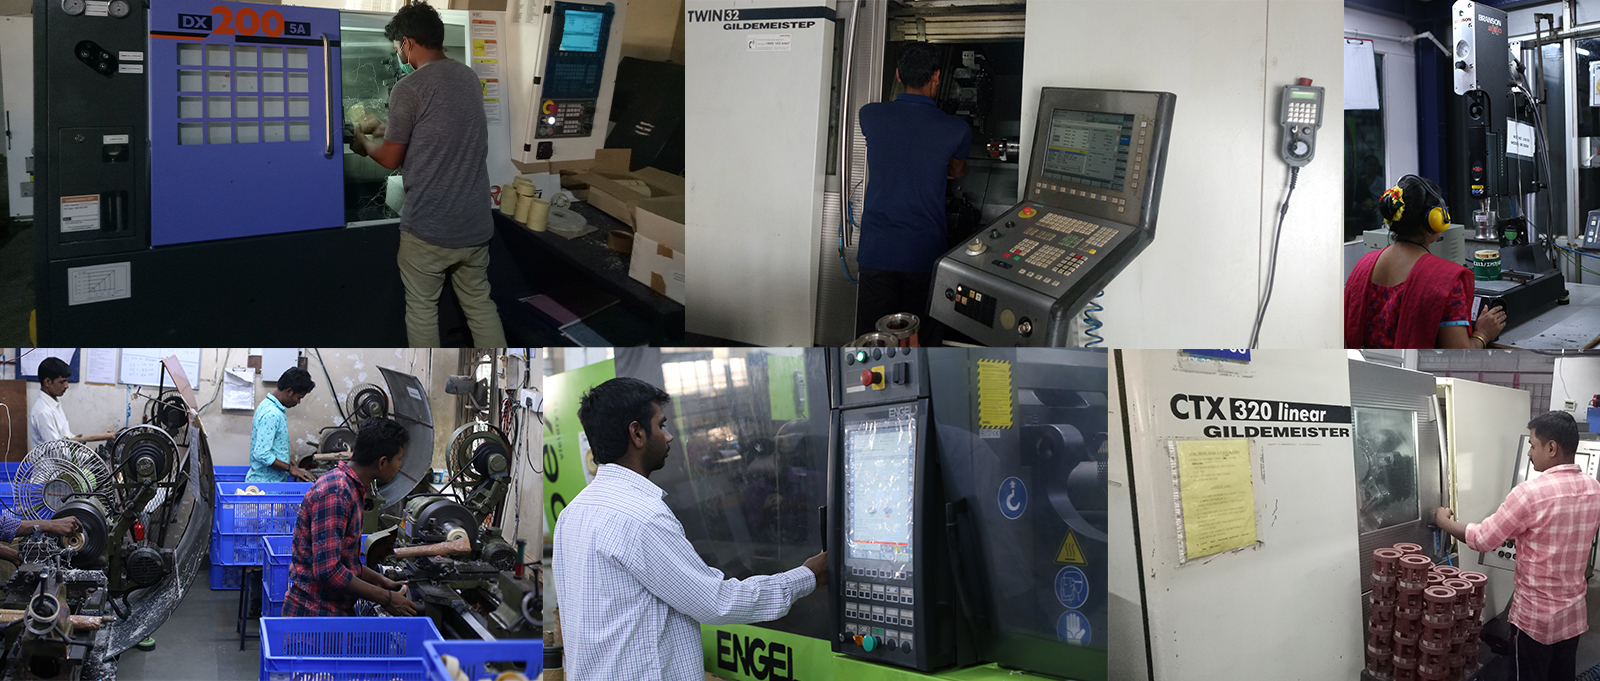 Nobtech Engineer – Operating Casting CNC Machine